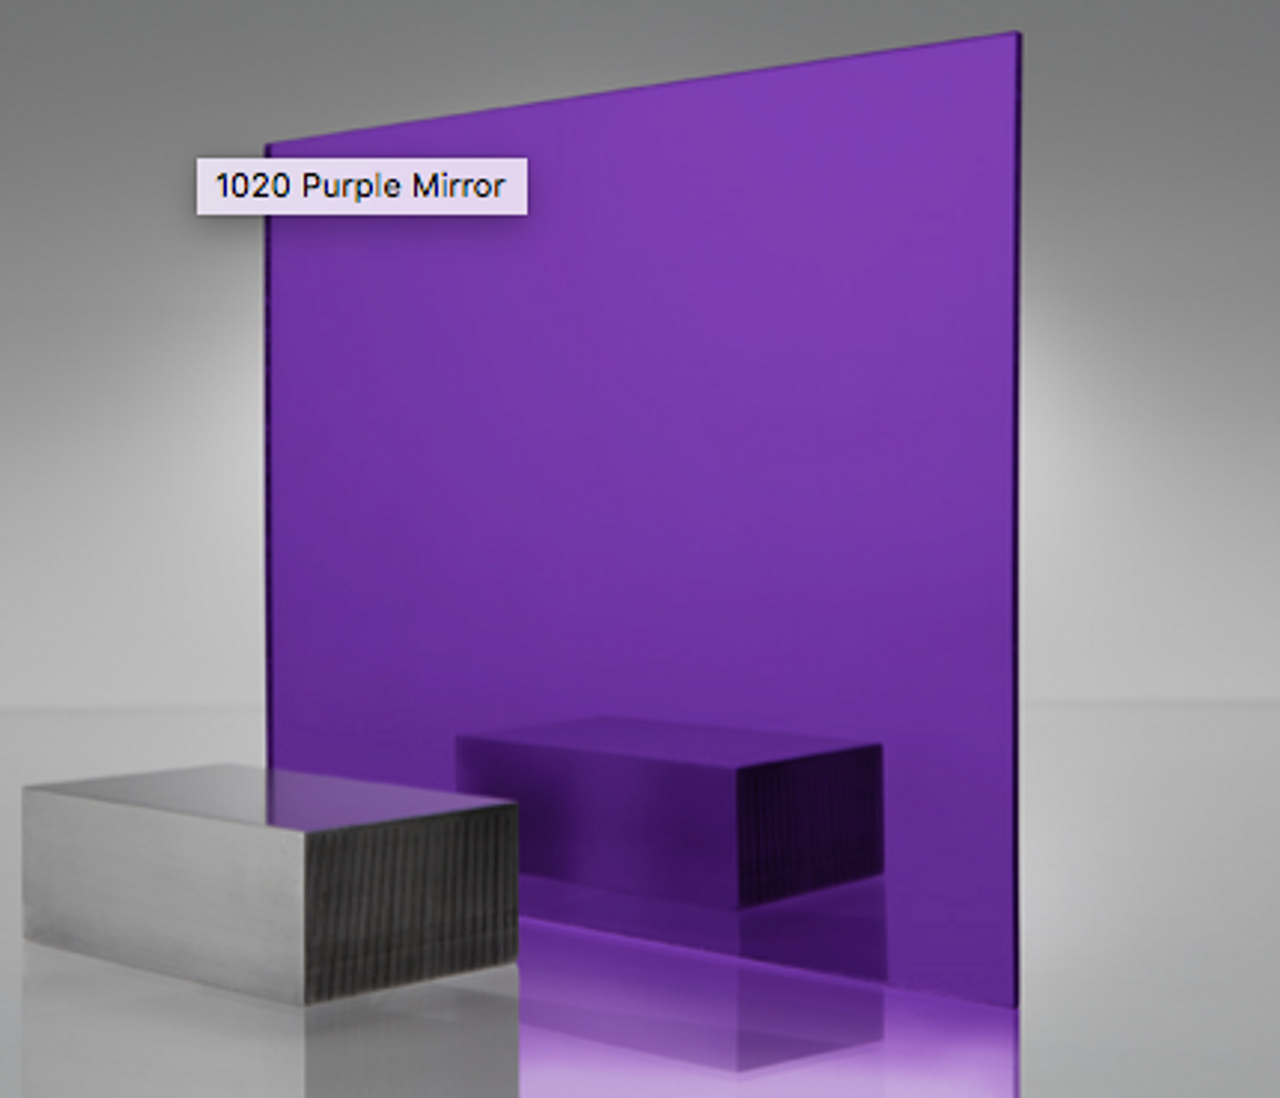 4x8' Mirrored Acrylic PURPLE